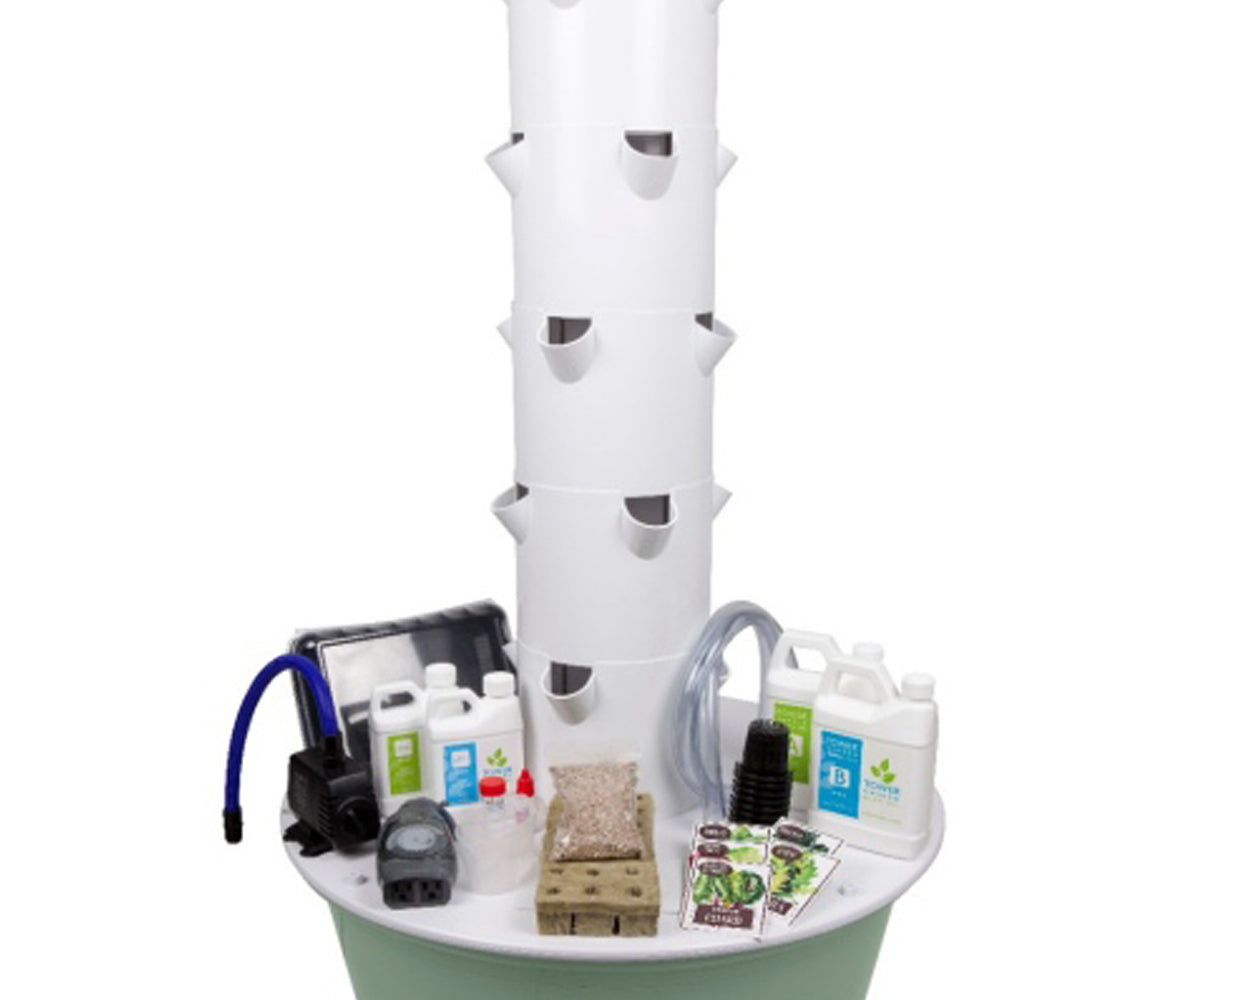 Tower Garden FLEX Growing System | $51.67 per month for 12 months